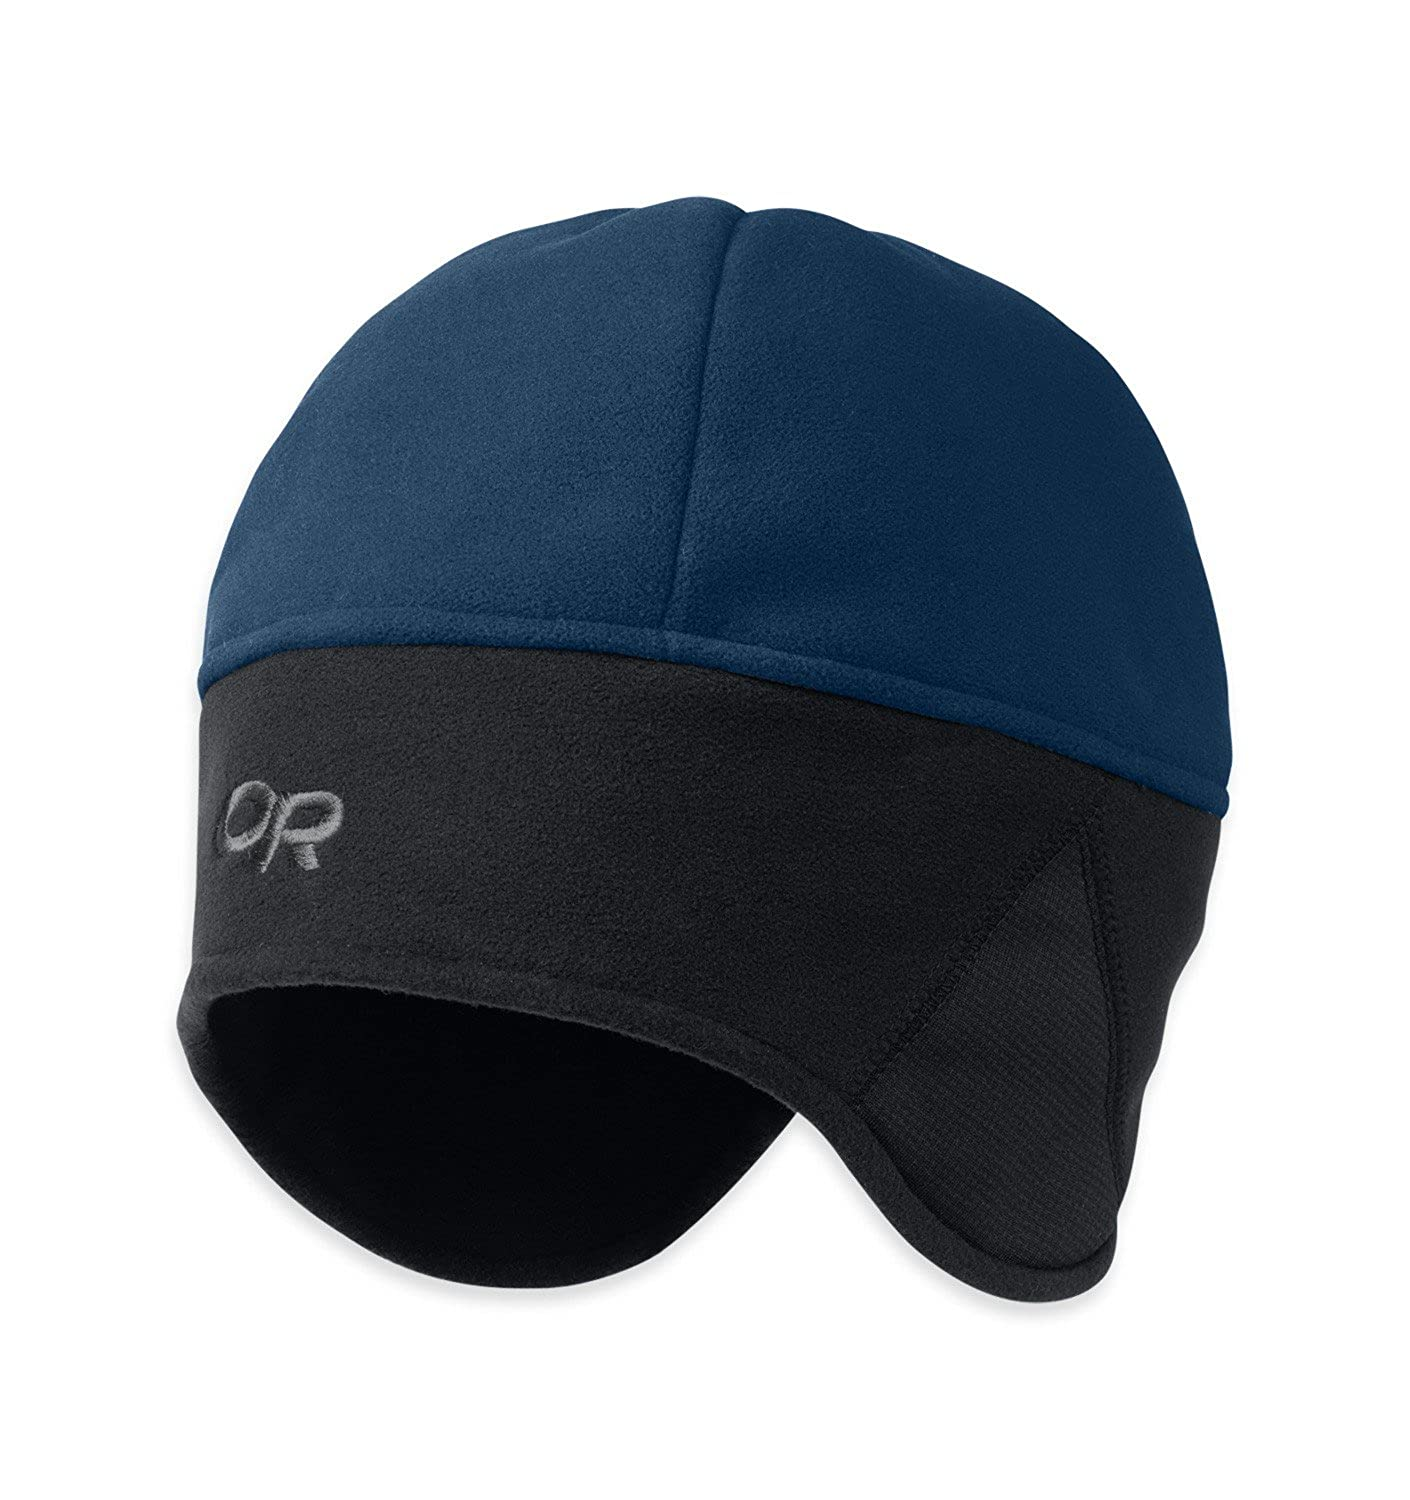 f3cd6c20addaf Amazon.com  Outdoor Research Wind Warrior Hat  Clothing